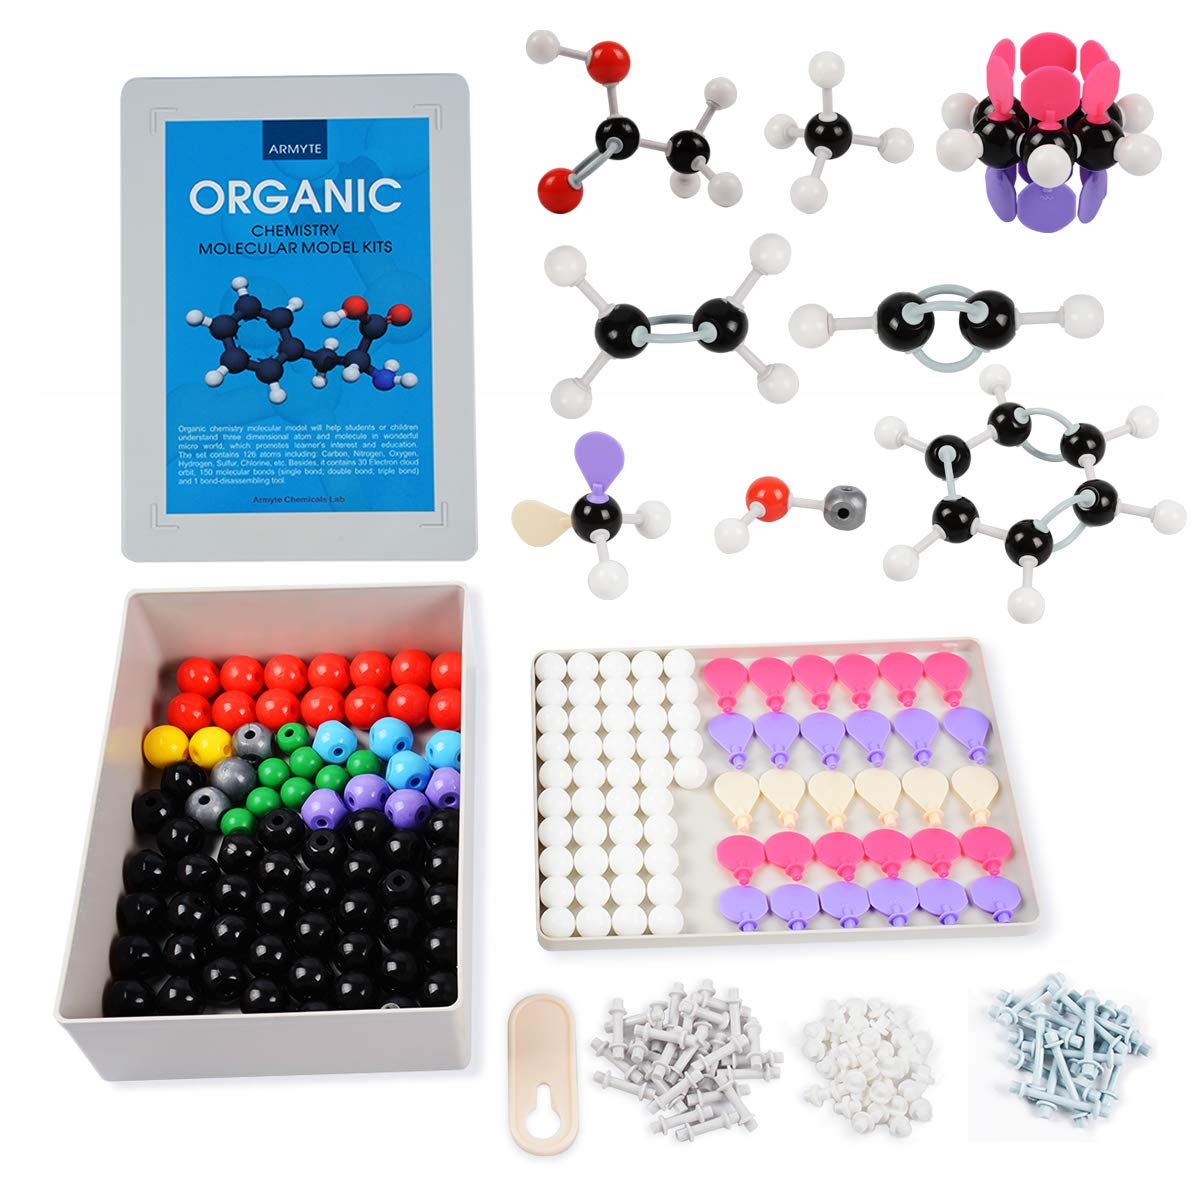 Organic Chemistry Model Kit (307 PCS) – Armyte Chemistry Molecular Model for Teacher Student and Young People Academic Chemistry Education, Pack with Atoms, Bonds, Electron Orbital (Colorful)